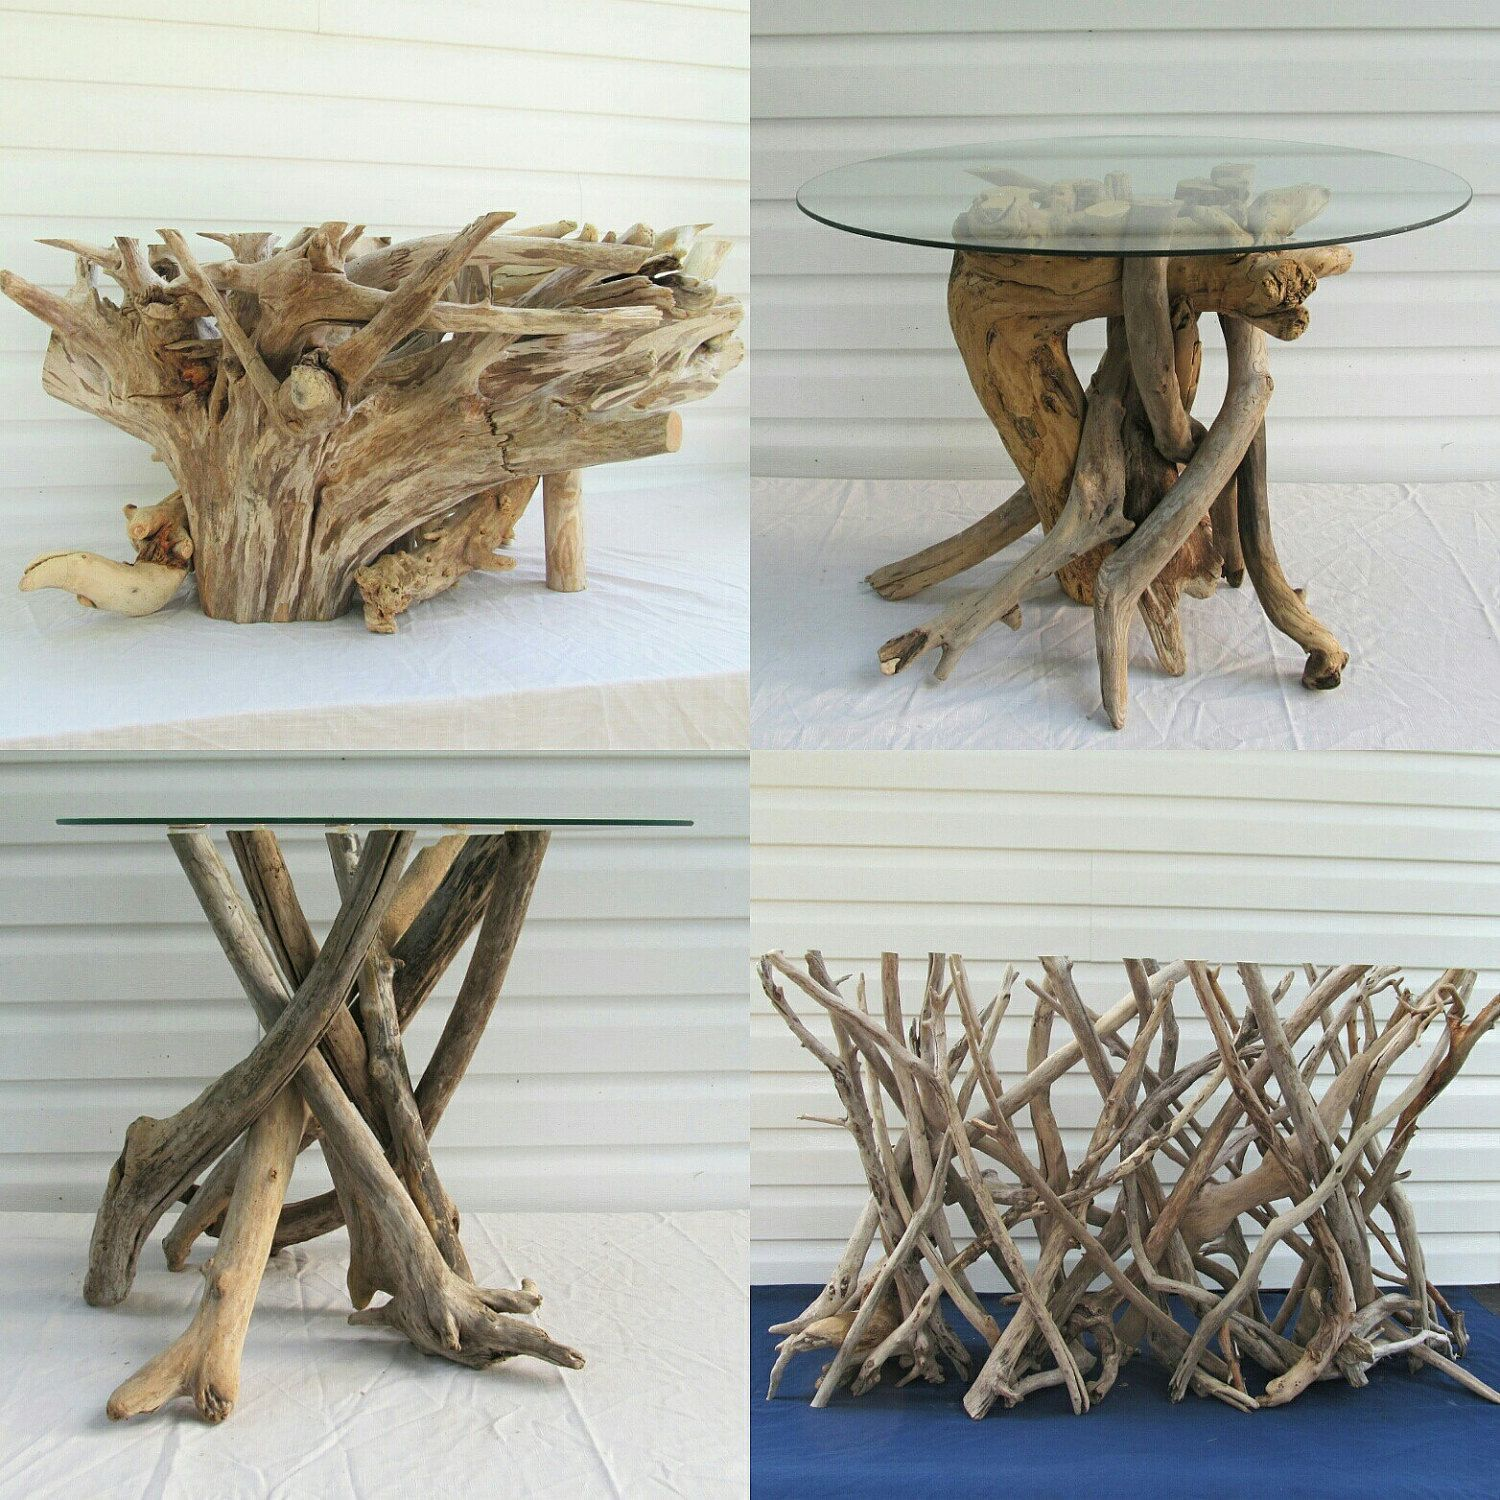 Driftwood coffee table base driftwood table driftwood